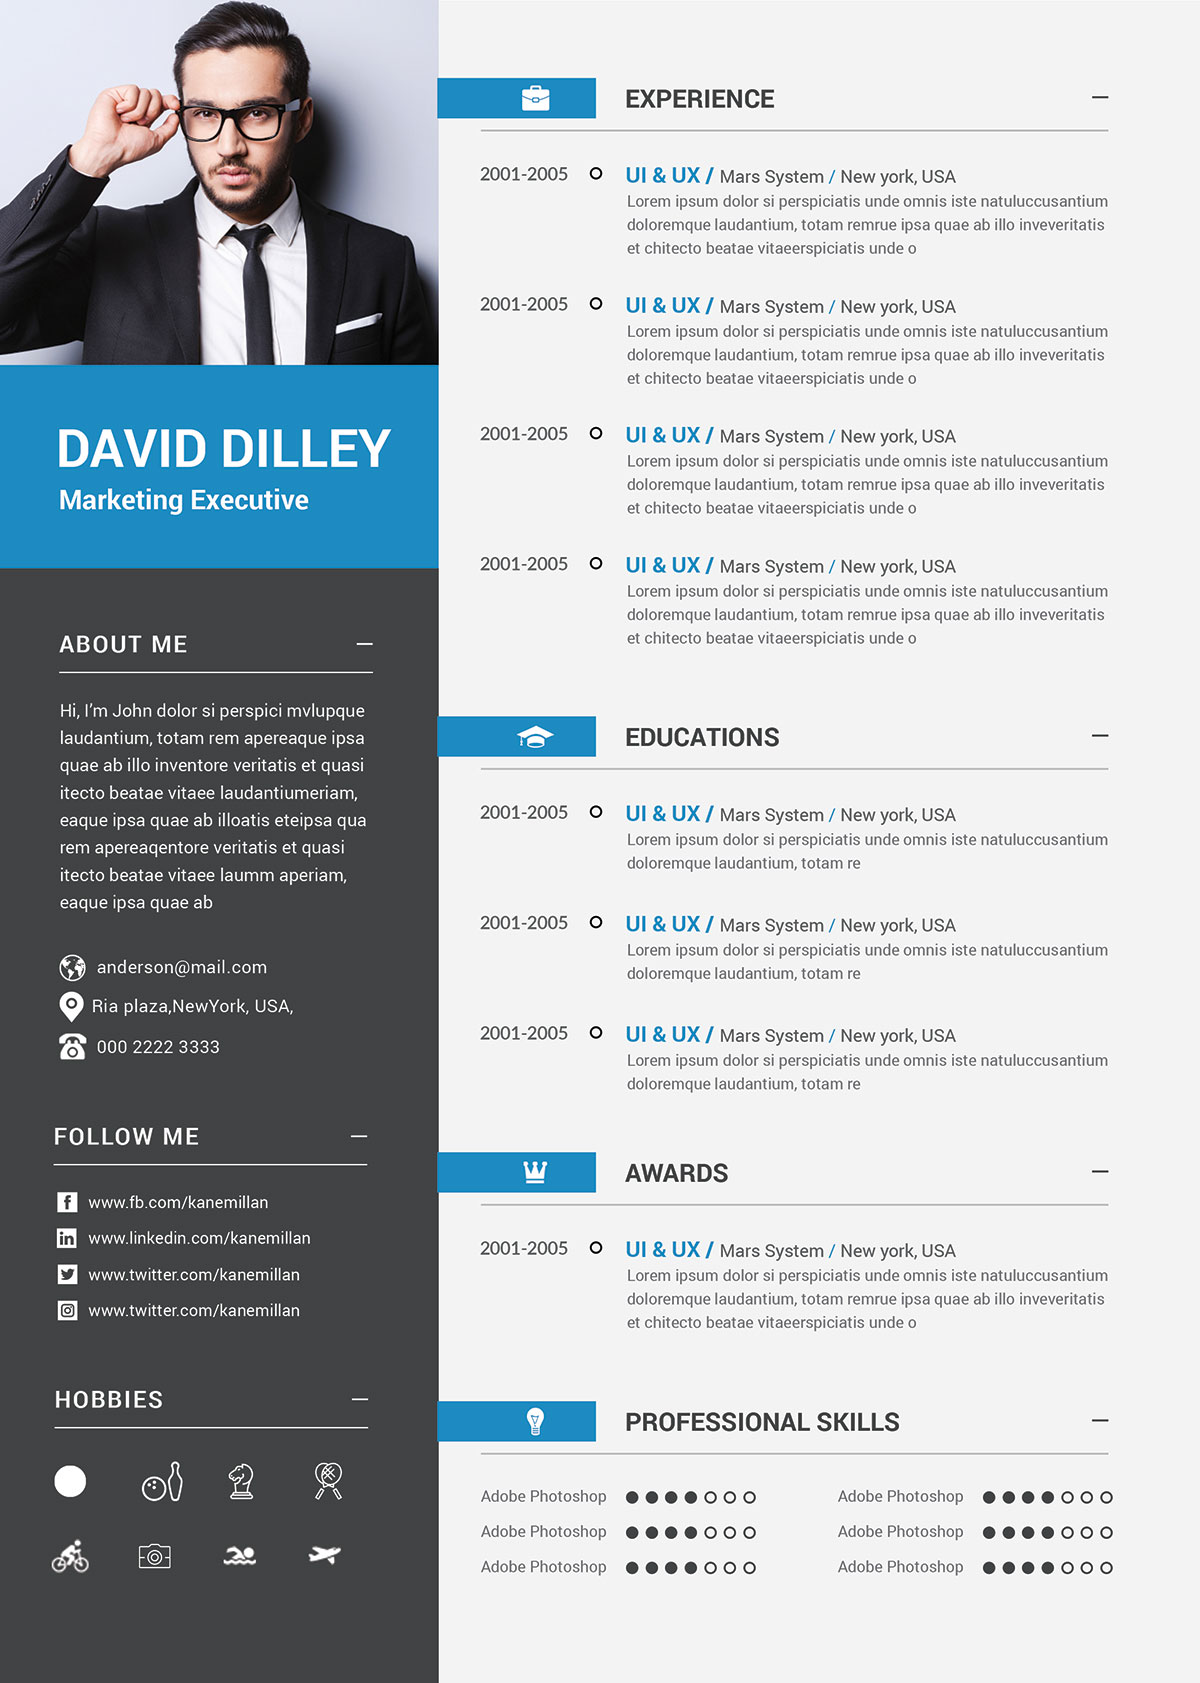 Free-Professional-CV-Template-& Cover-Letter-for-Marketing-Executive (5)